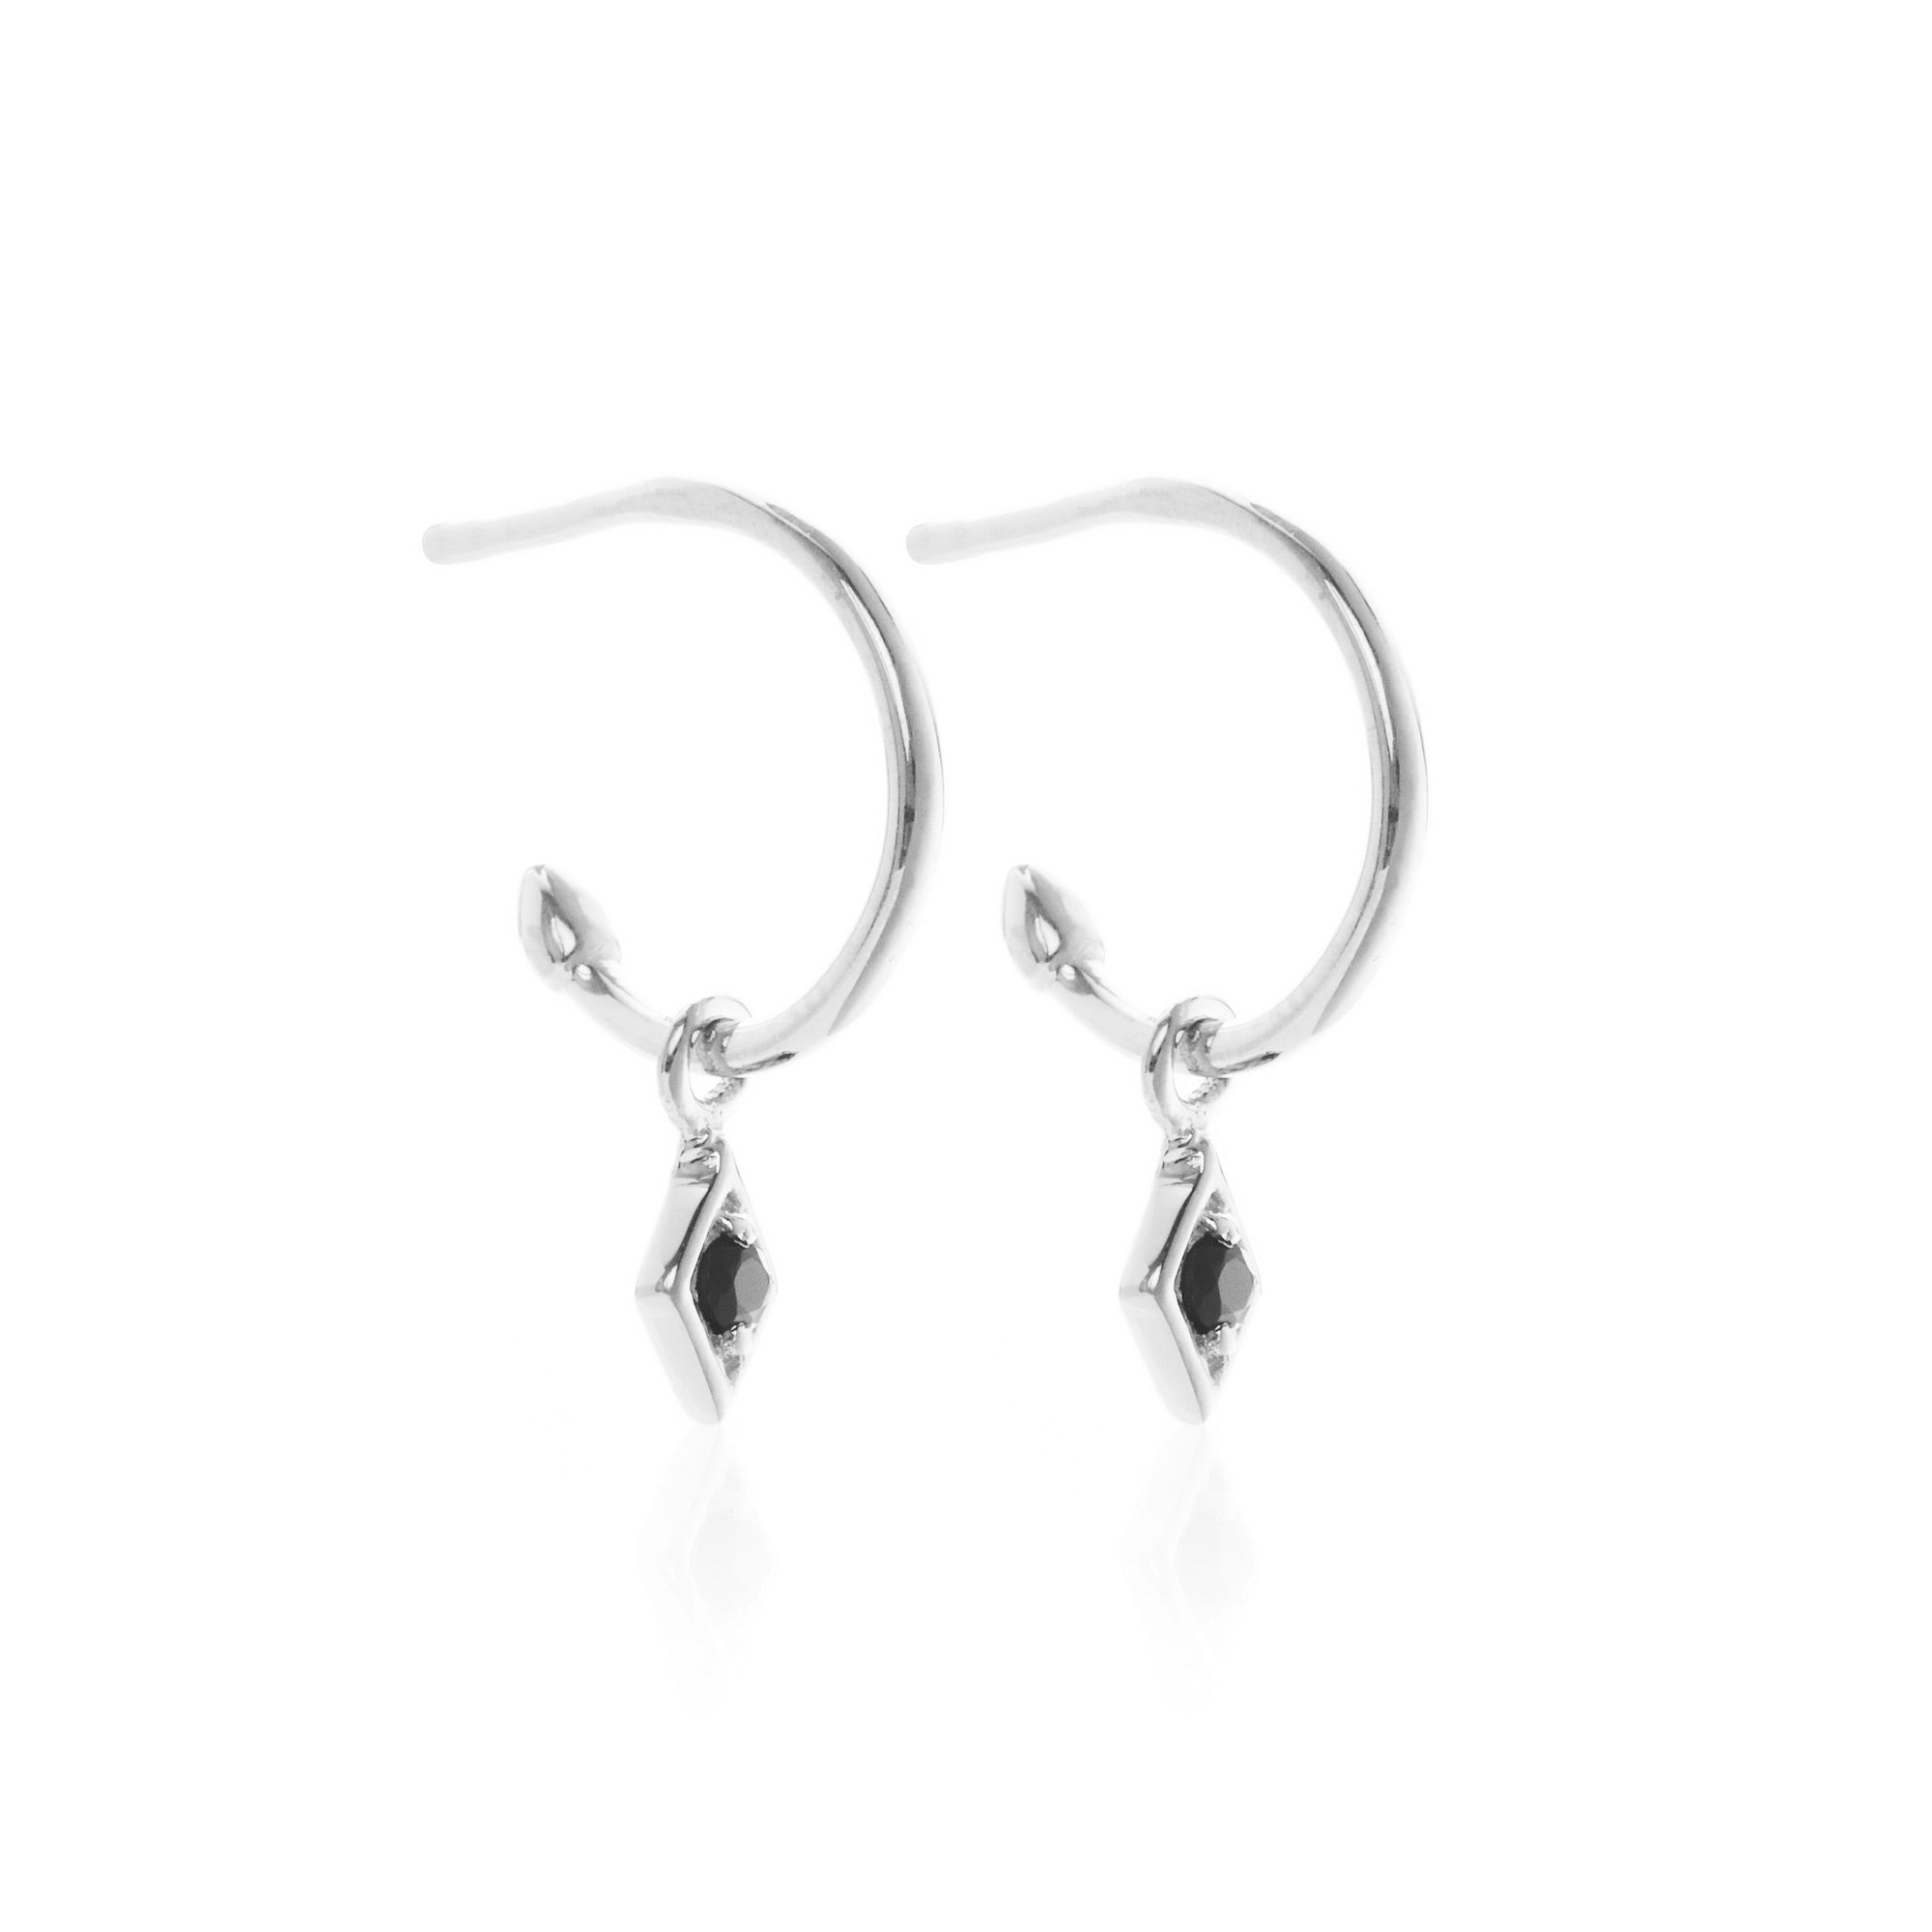 Superfine / Earrings / Keepsake Hoop / Black Spinel + Silver